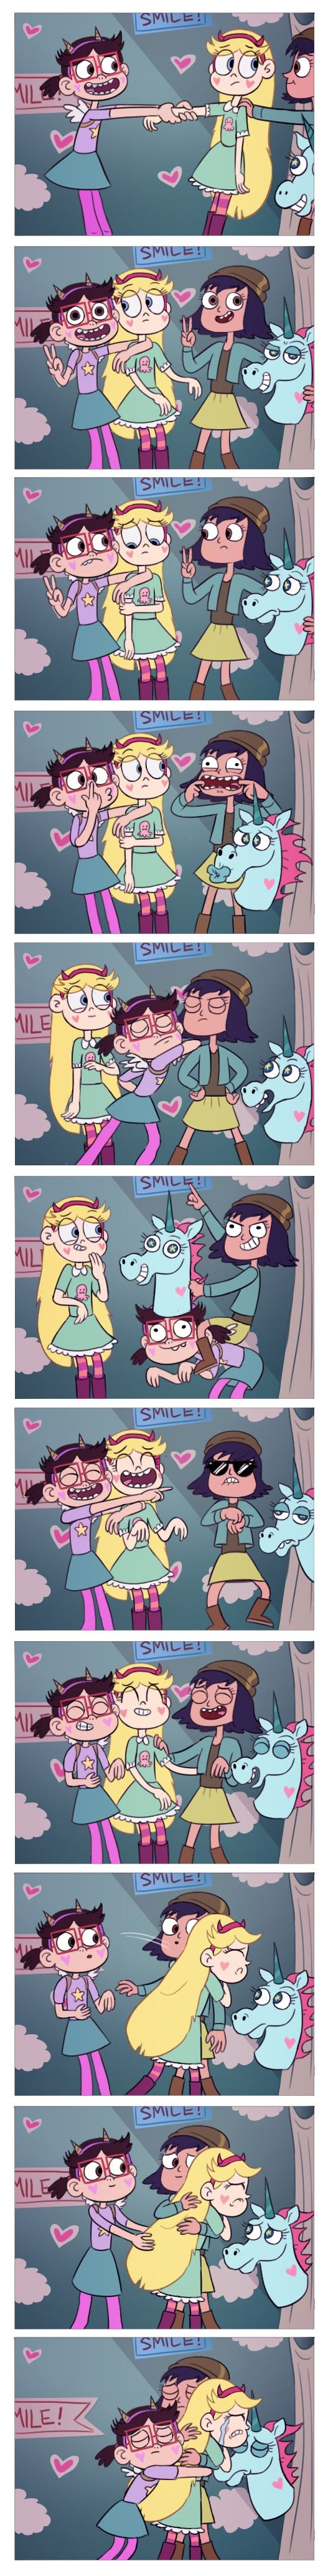 I feel like Her friends would do something like this, to cheer her up after she was sad about Marco......